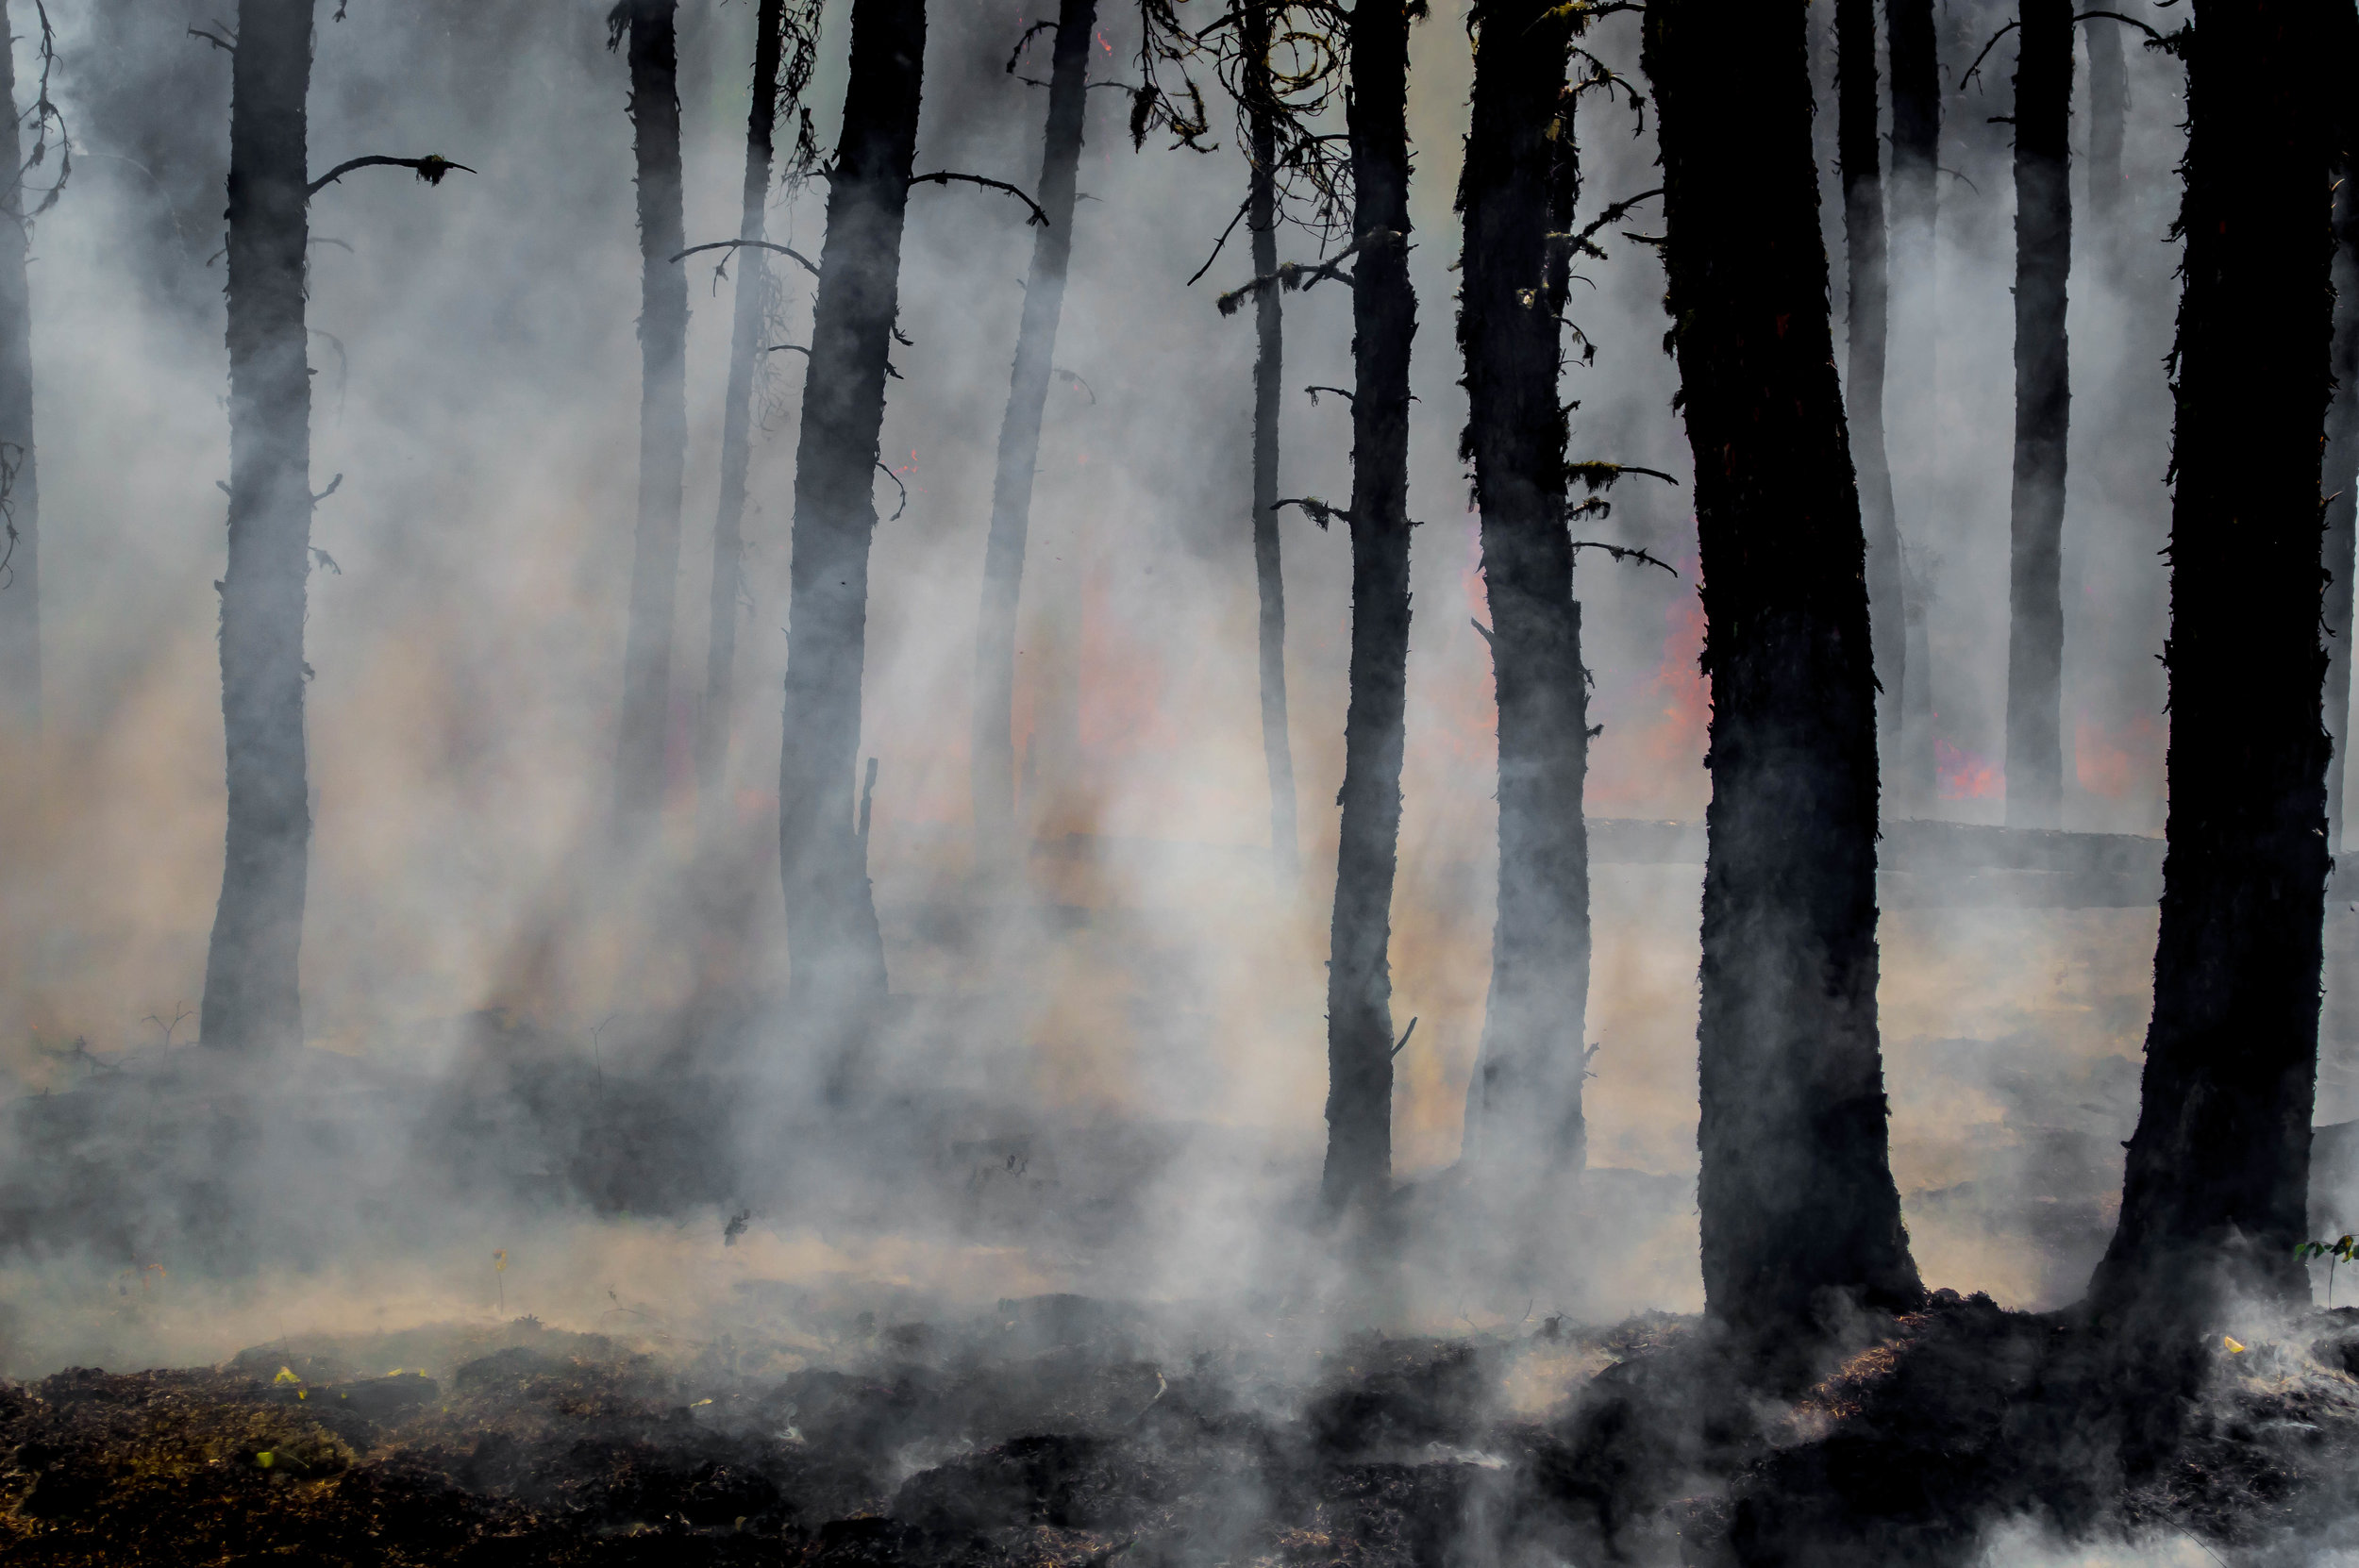 Prescribed burns of forests have been used for centuries to manage and restore environments.